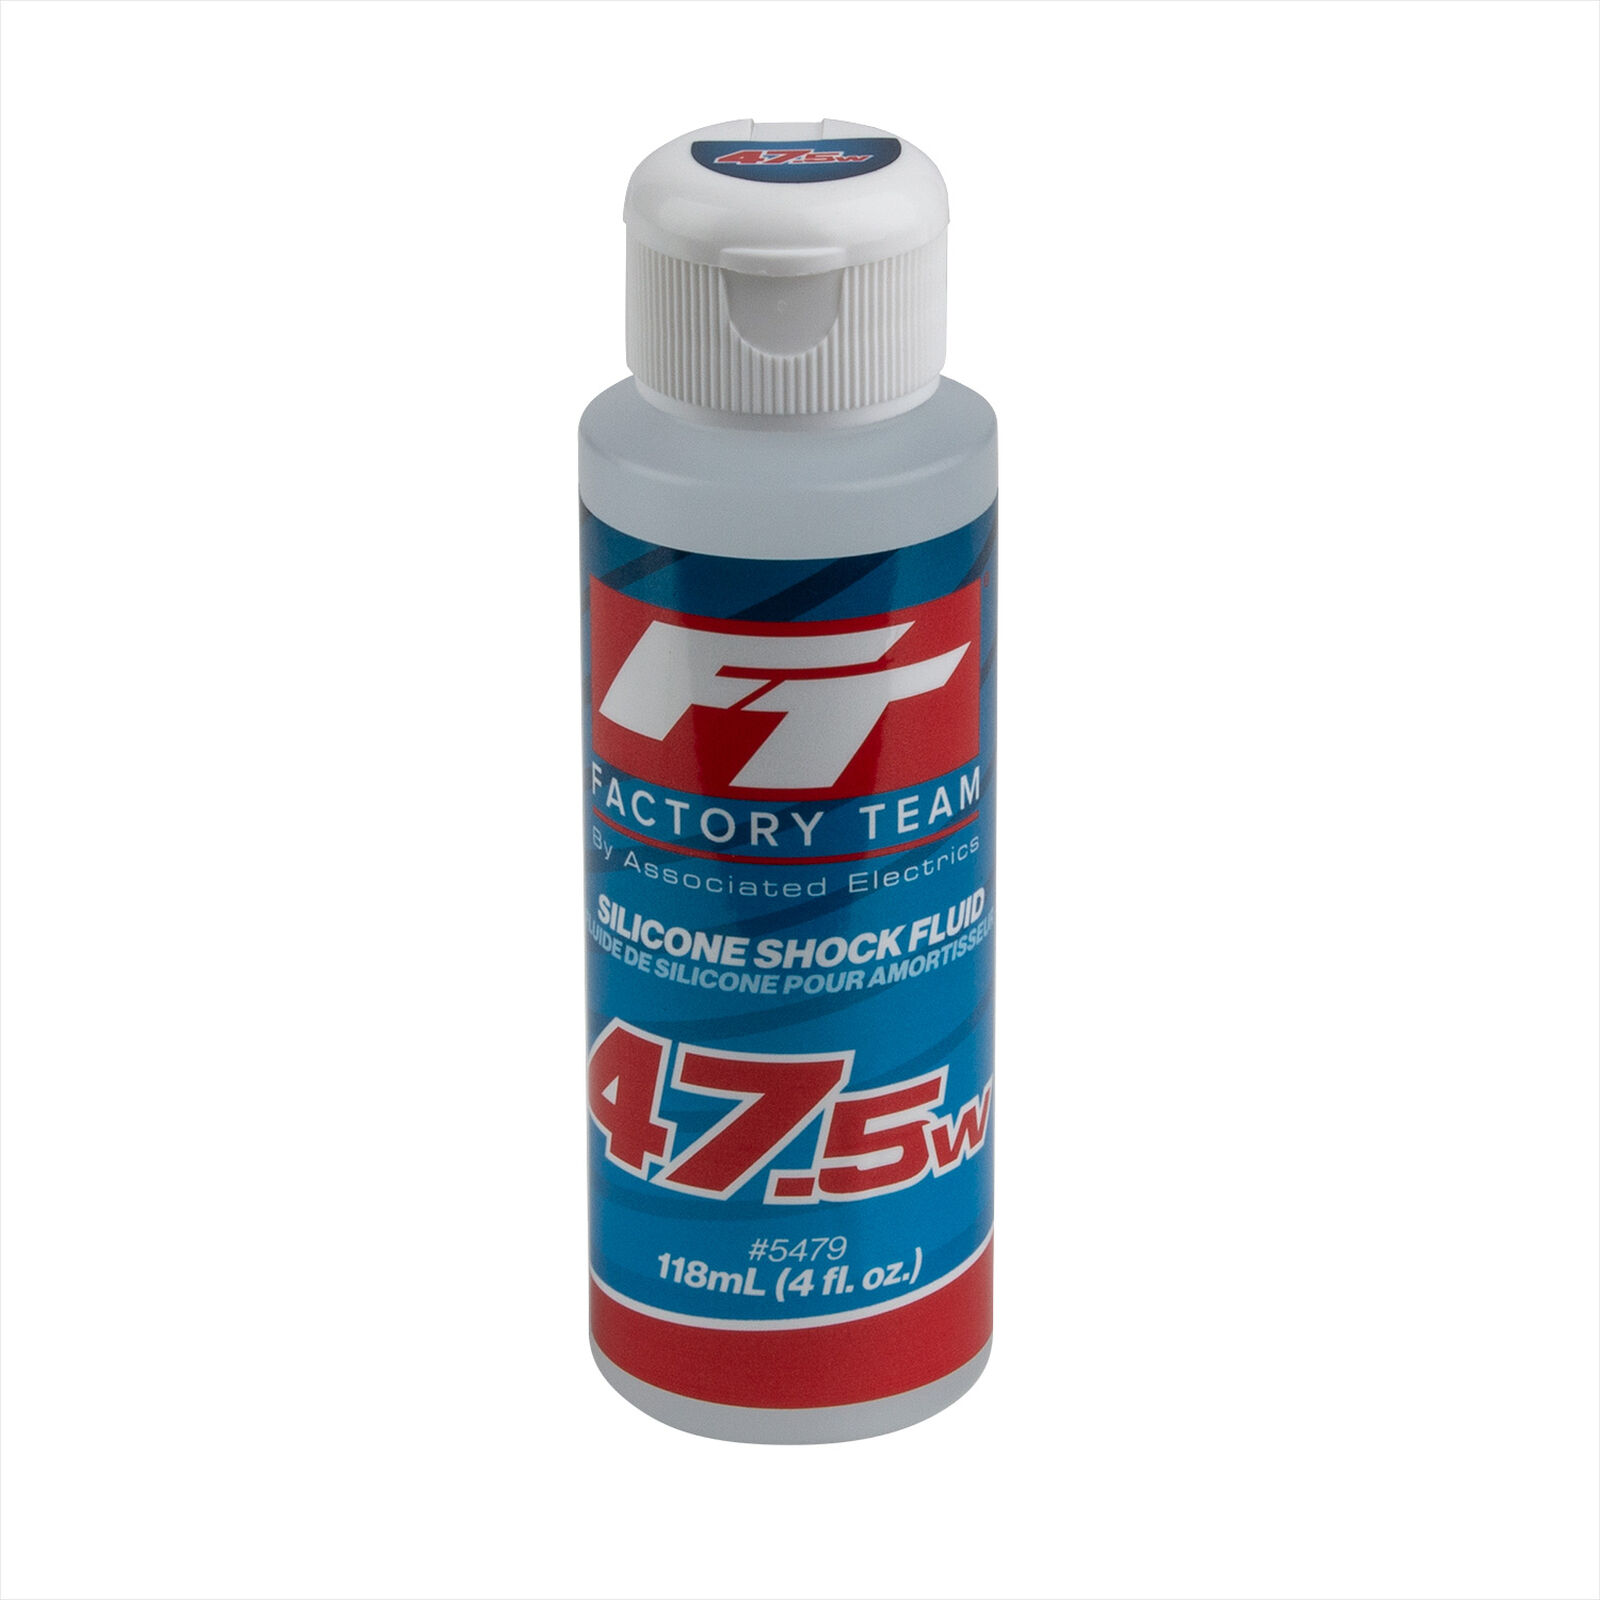 FT Silicone Shock Fluid, 47.5wt (613 cSt)